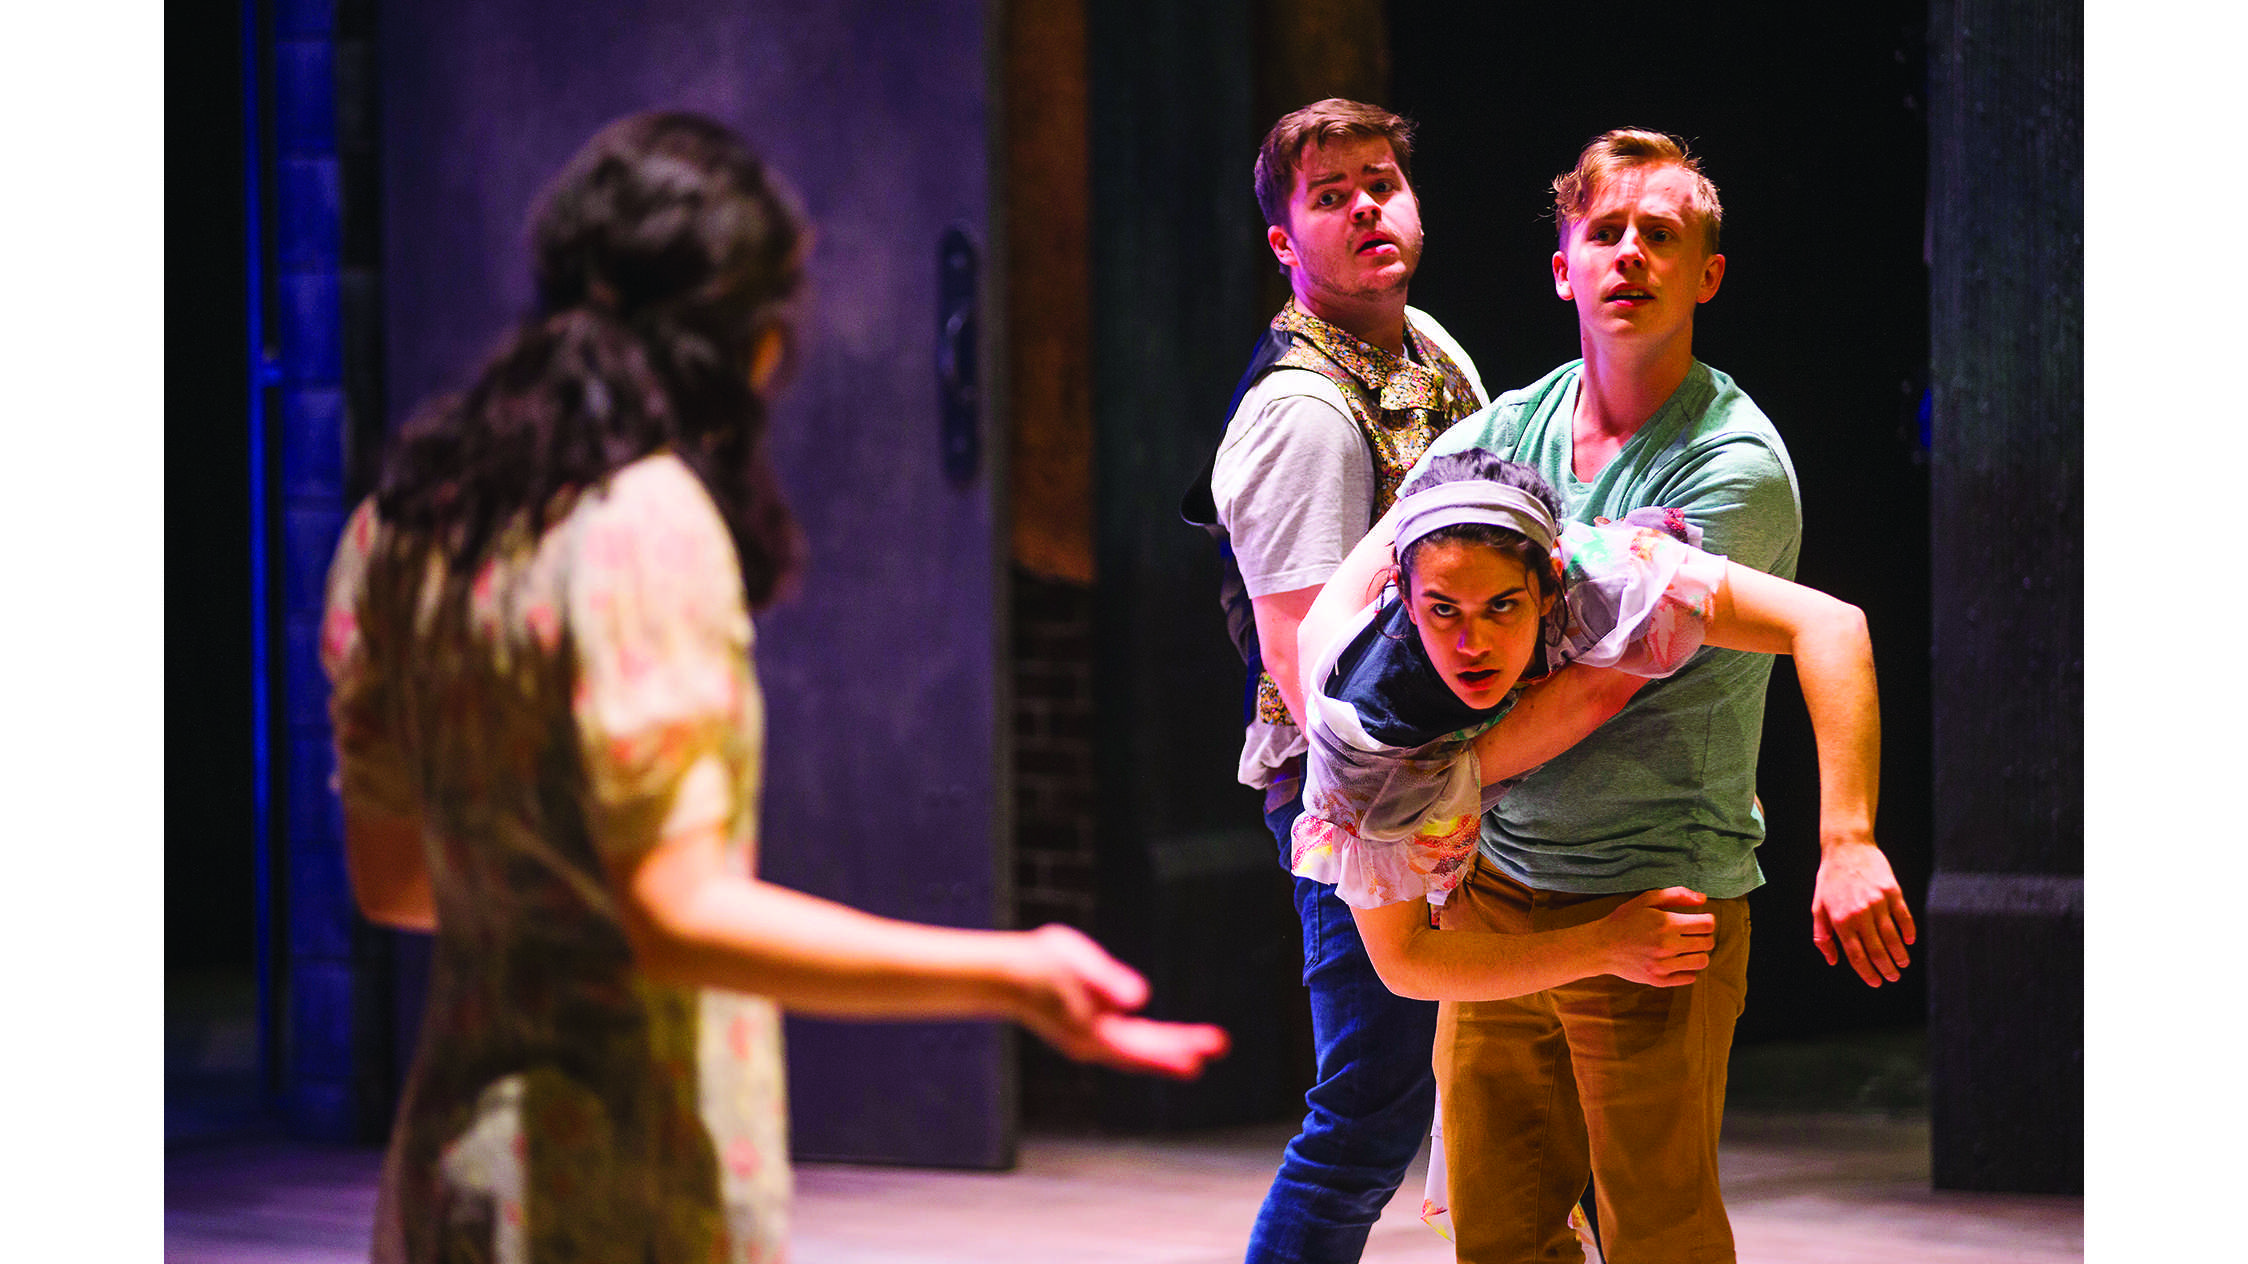 The Theater Department's production of A Midsummer Night's Dream is set to enrapture audiences into a magical world